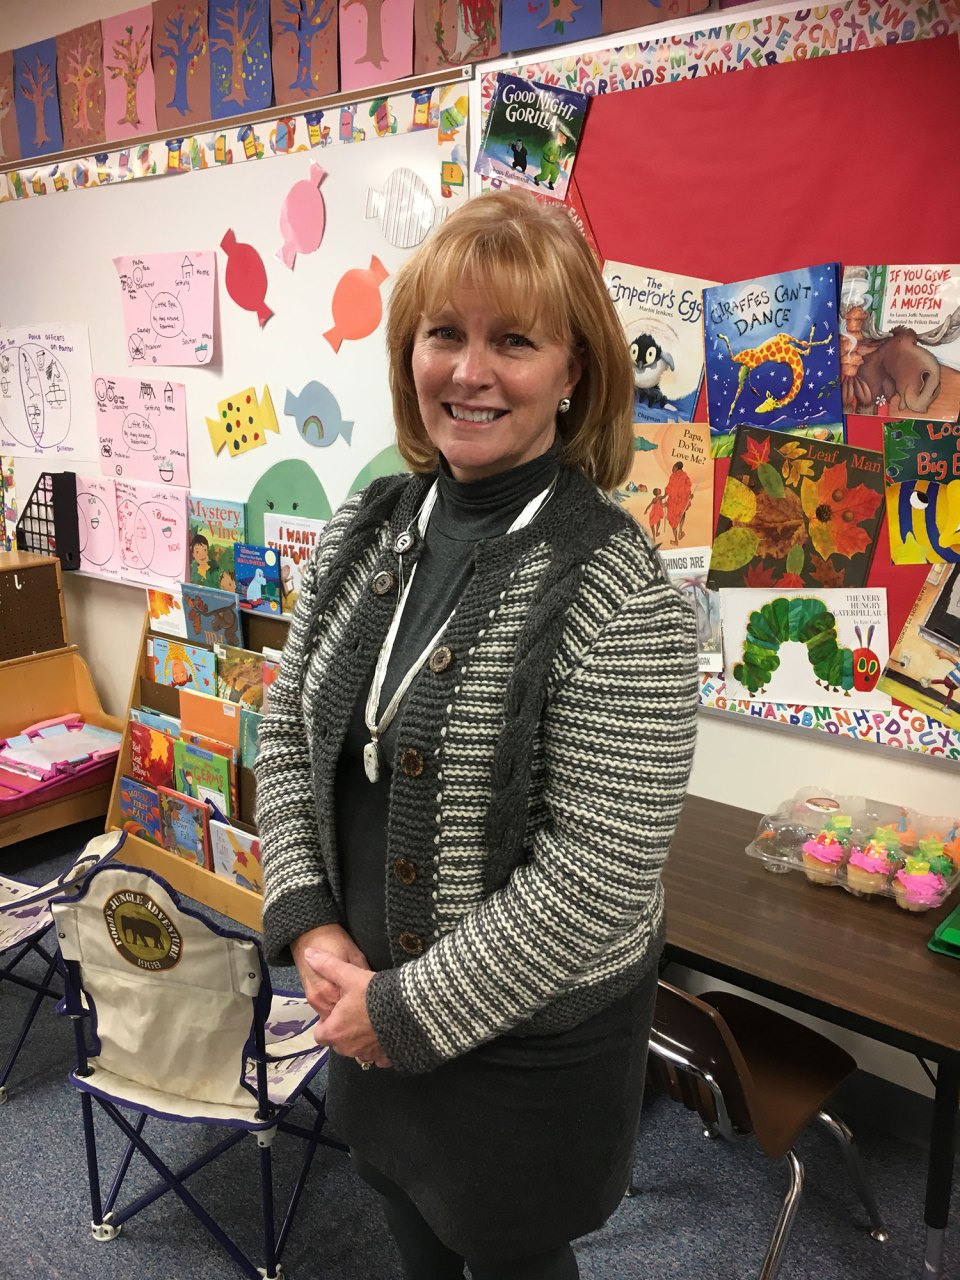 Brenda S. Van Gorder is the director of the Granite School District's preschool program, which is experimenting with pay-for-success funding.